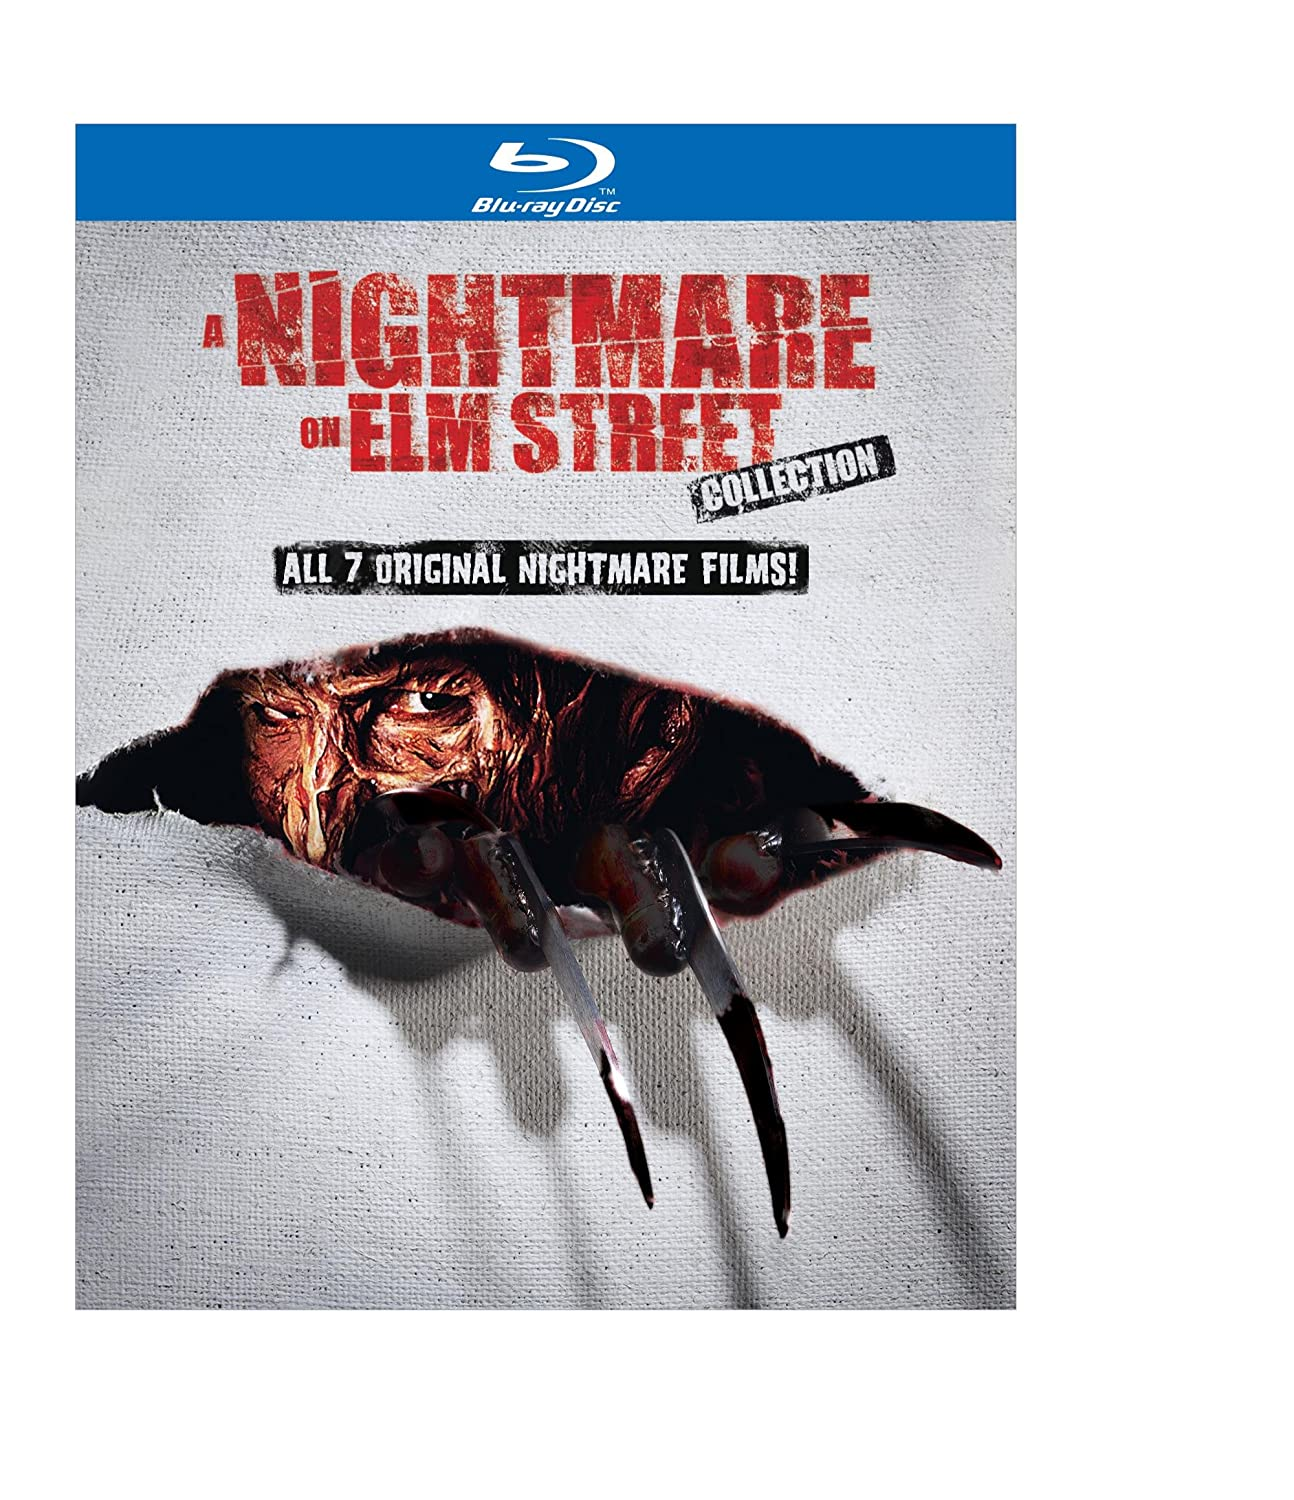 A Nightmare on Elm Street Collection (All 7 Original Nightmare Films + Bonus Disc) [Blu-ray]$25.99